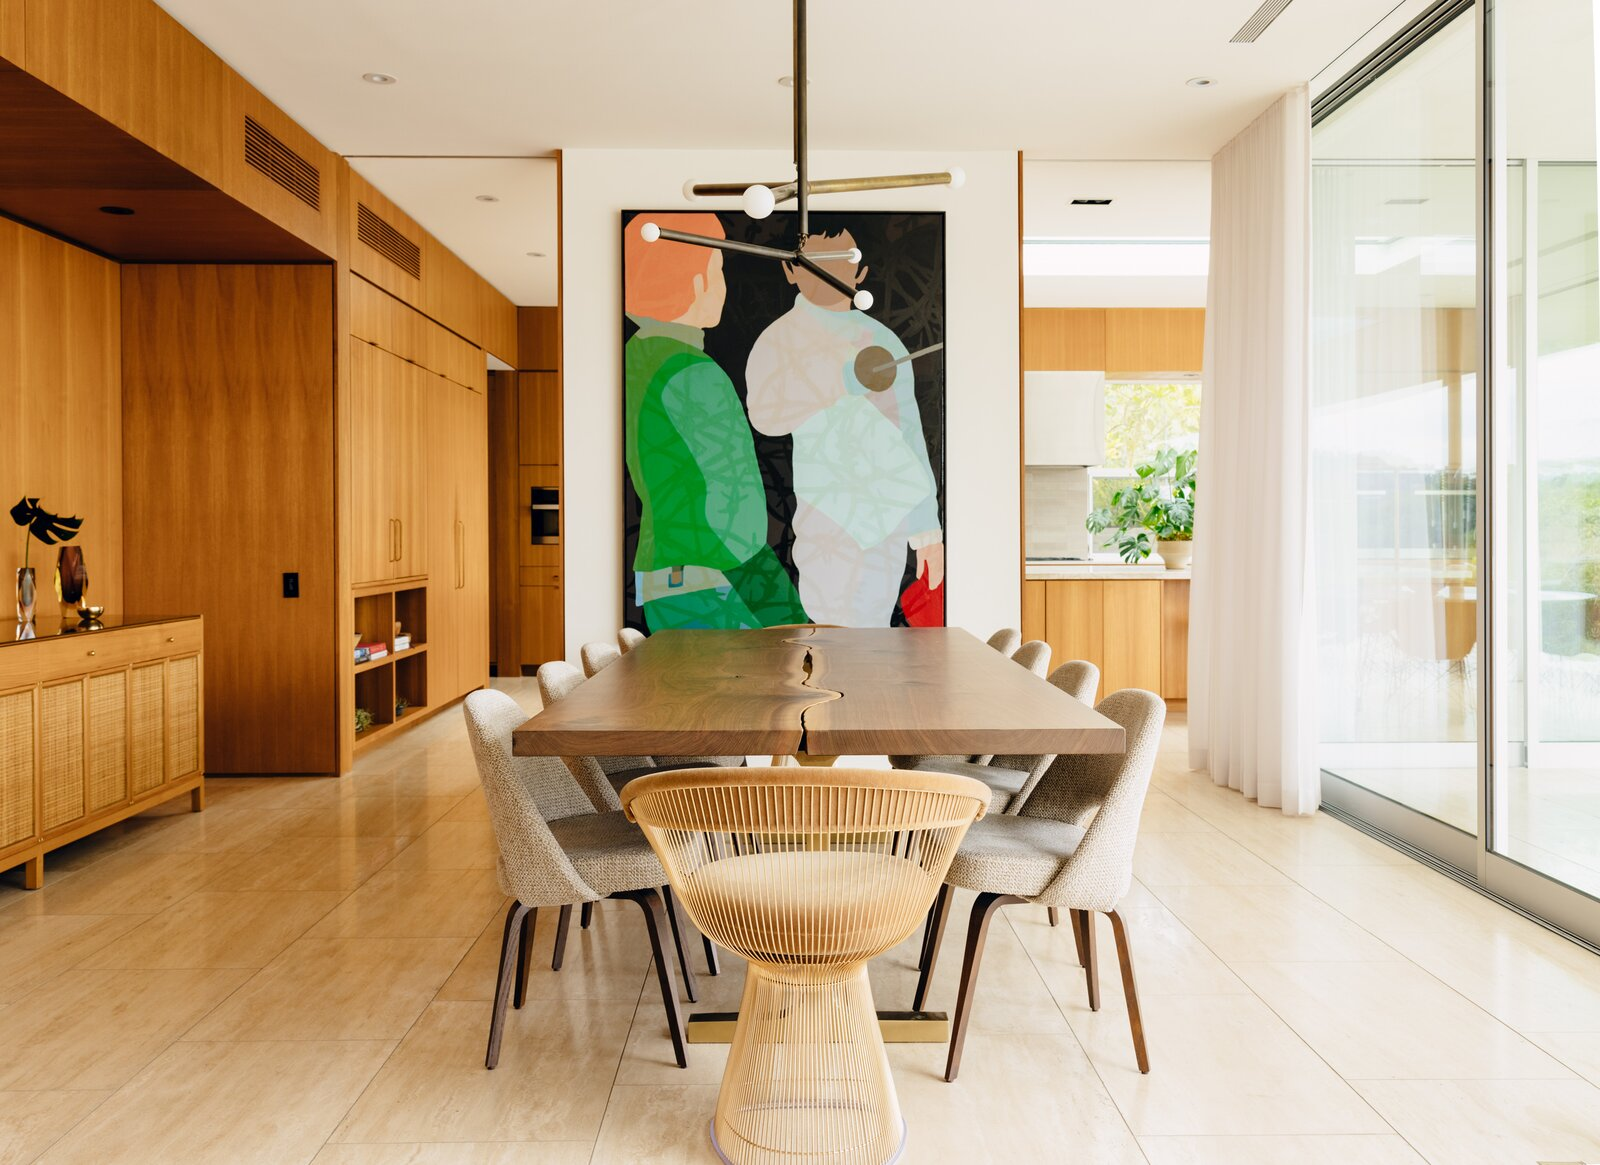 Dining room of Clear Oak Residence by Woods & Dangaran Architects